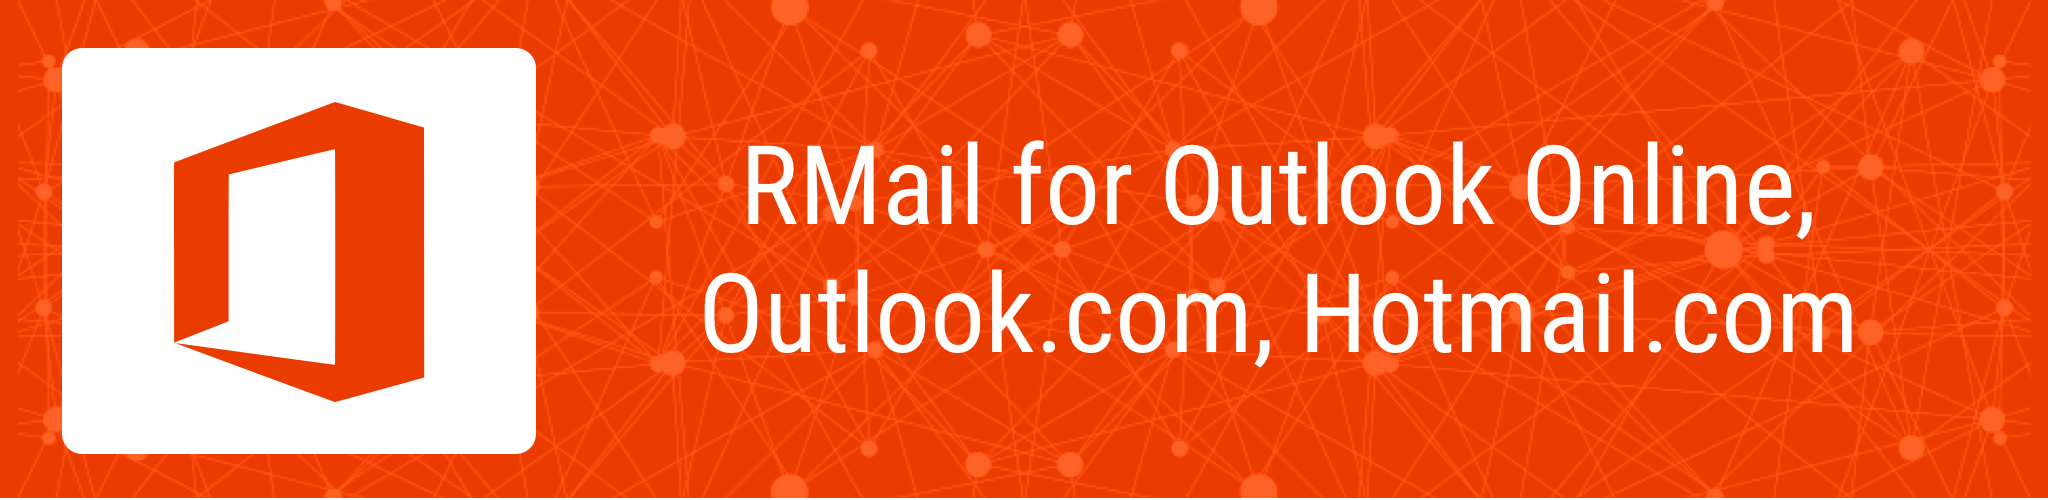 RMail for Outlook Online, Outlook.com, Hotmail.com